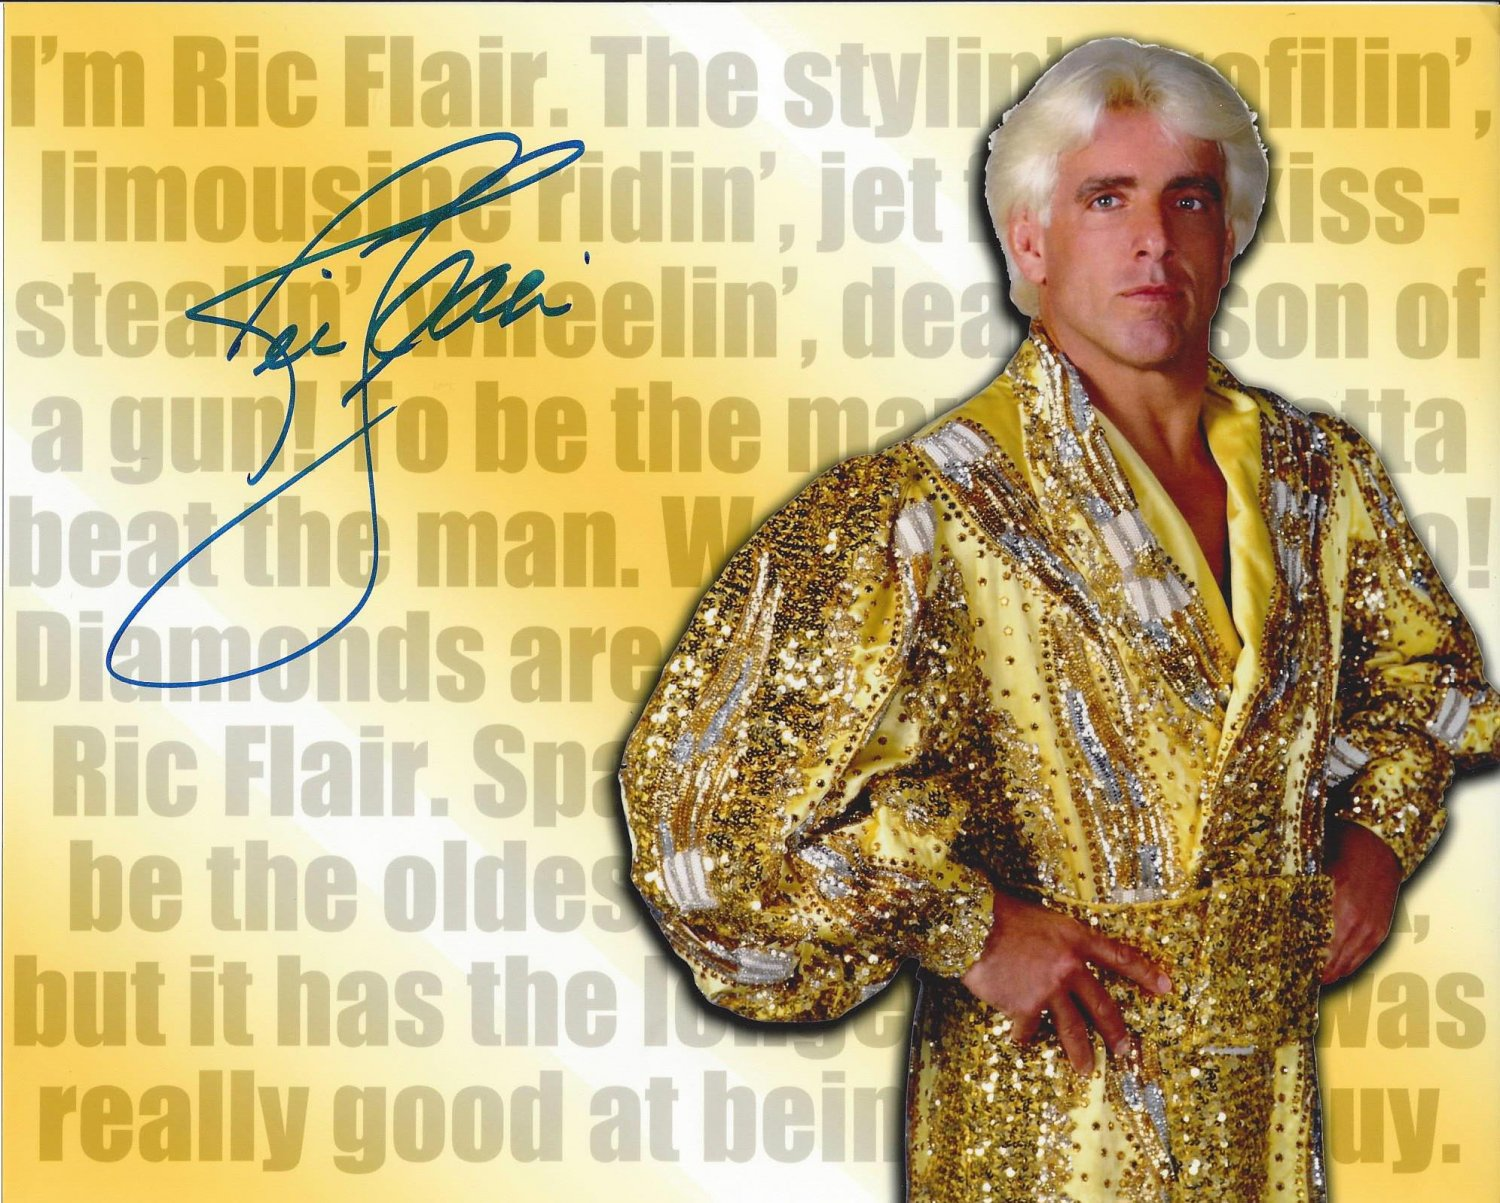 """Ric Flair Nature Boy (Wrestler) 8 x 10"""" Signed / Autographed Photo (Reprint :1035) Great Gift Idea!"""